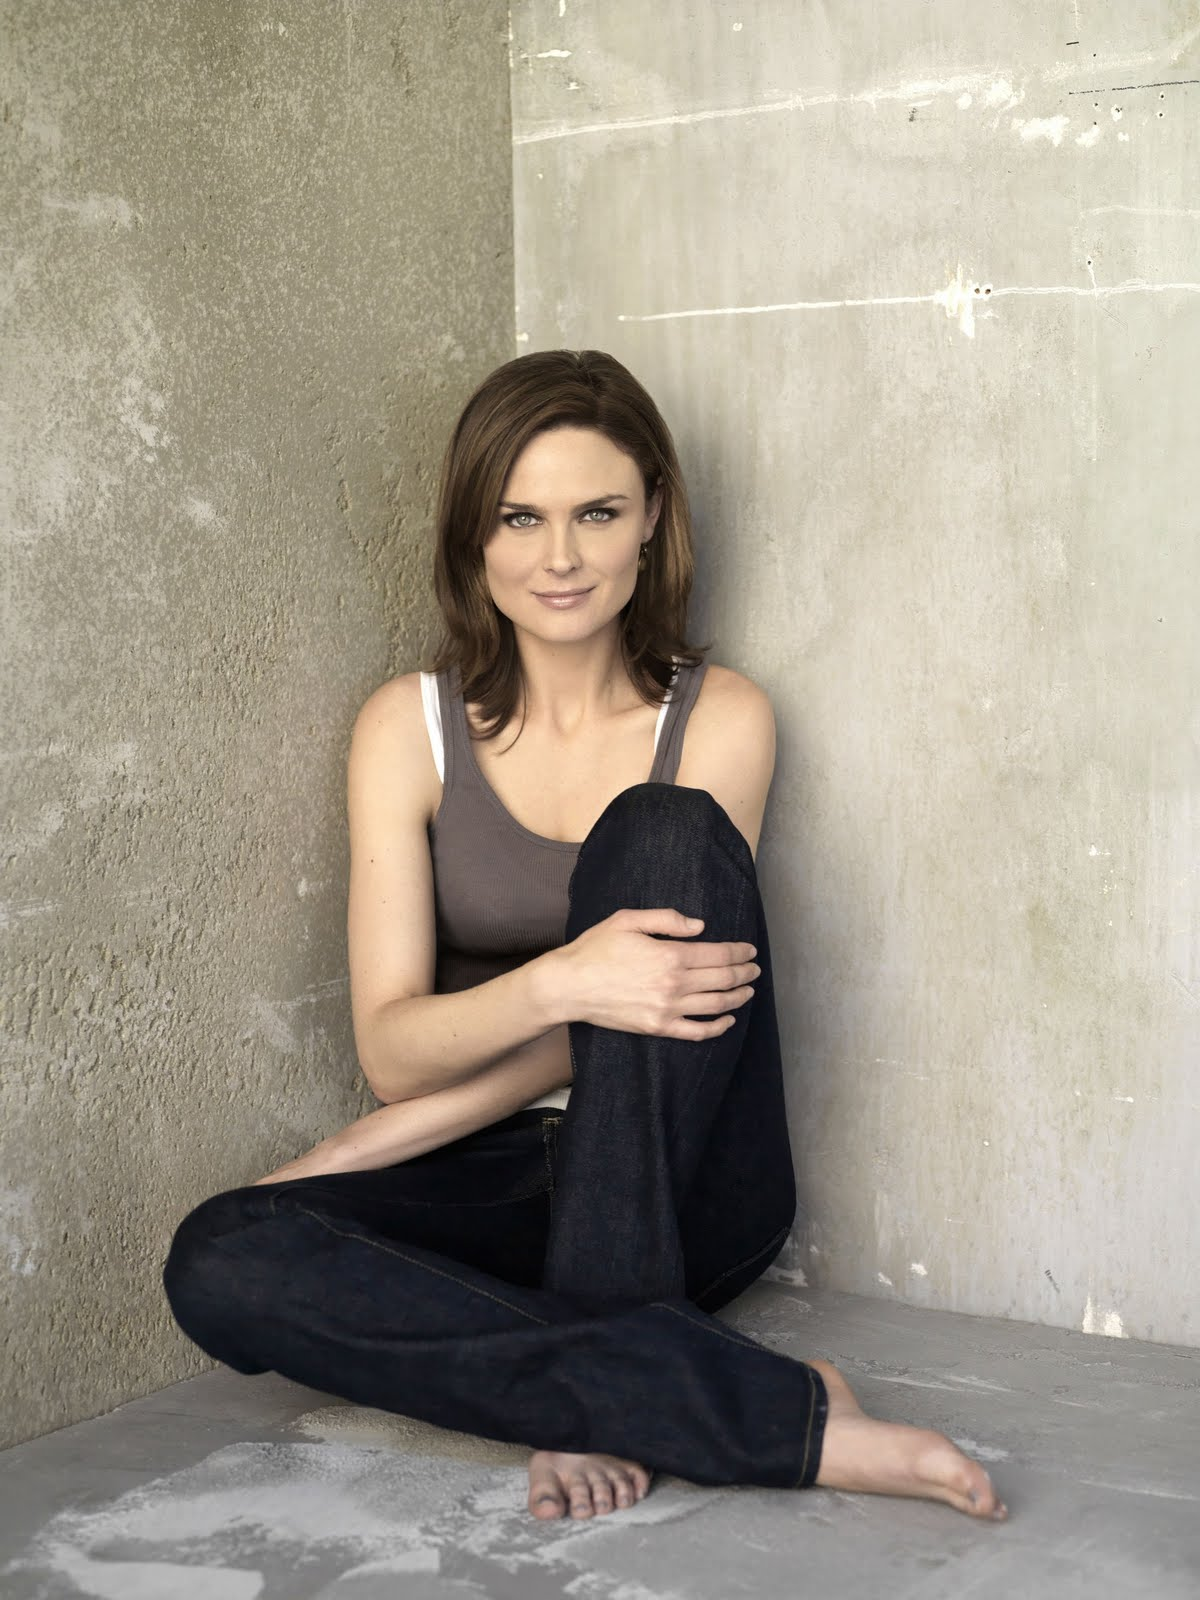 http://1.bp.blogspot.com/-ZgaqW7y48rU/TmOSWyCTkYI/AAAAAAAAAy8/ShelAPaM854/s1600/bones_tv_series_emily_deschanel_green_eye_desktop_background_beautifull_www.Vvallpaper.net.jpg